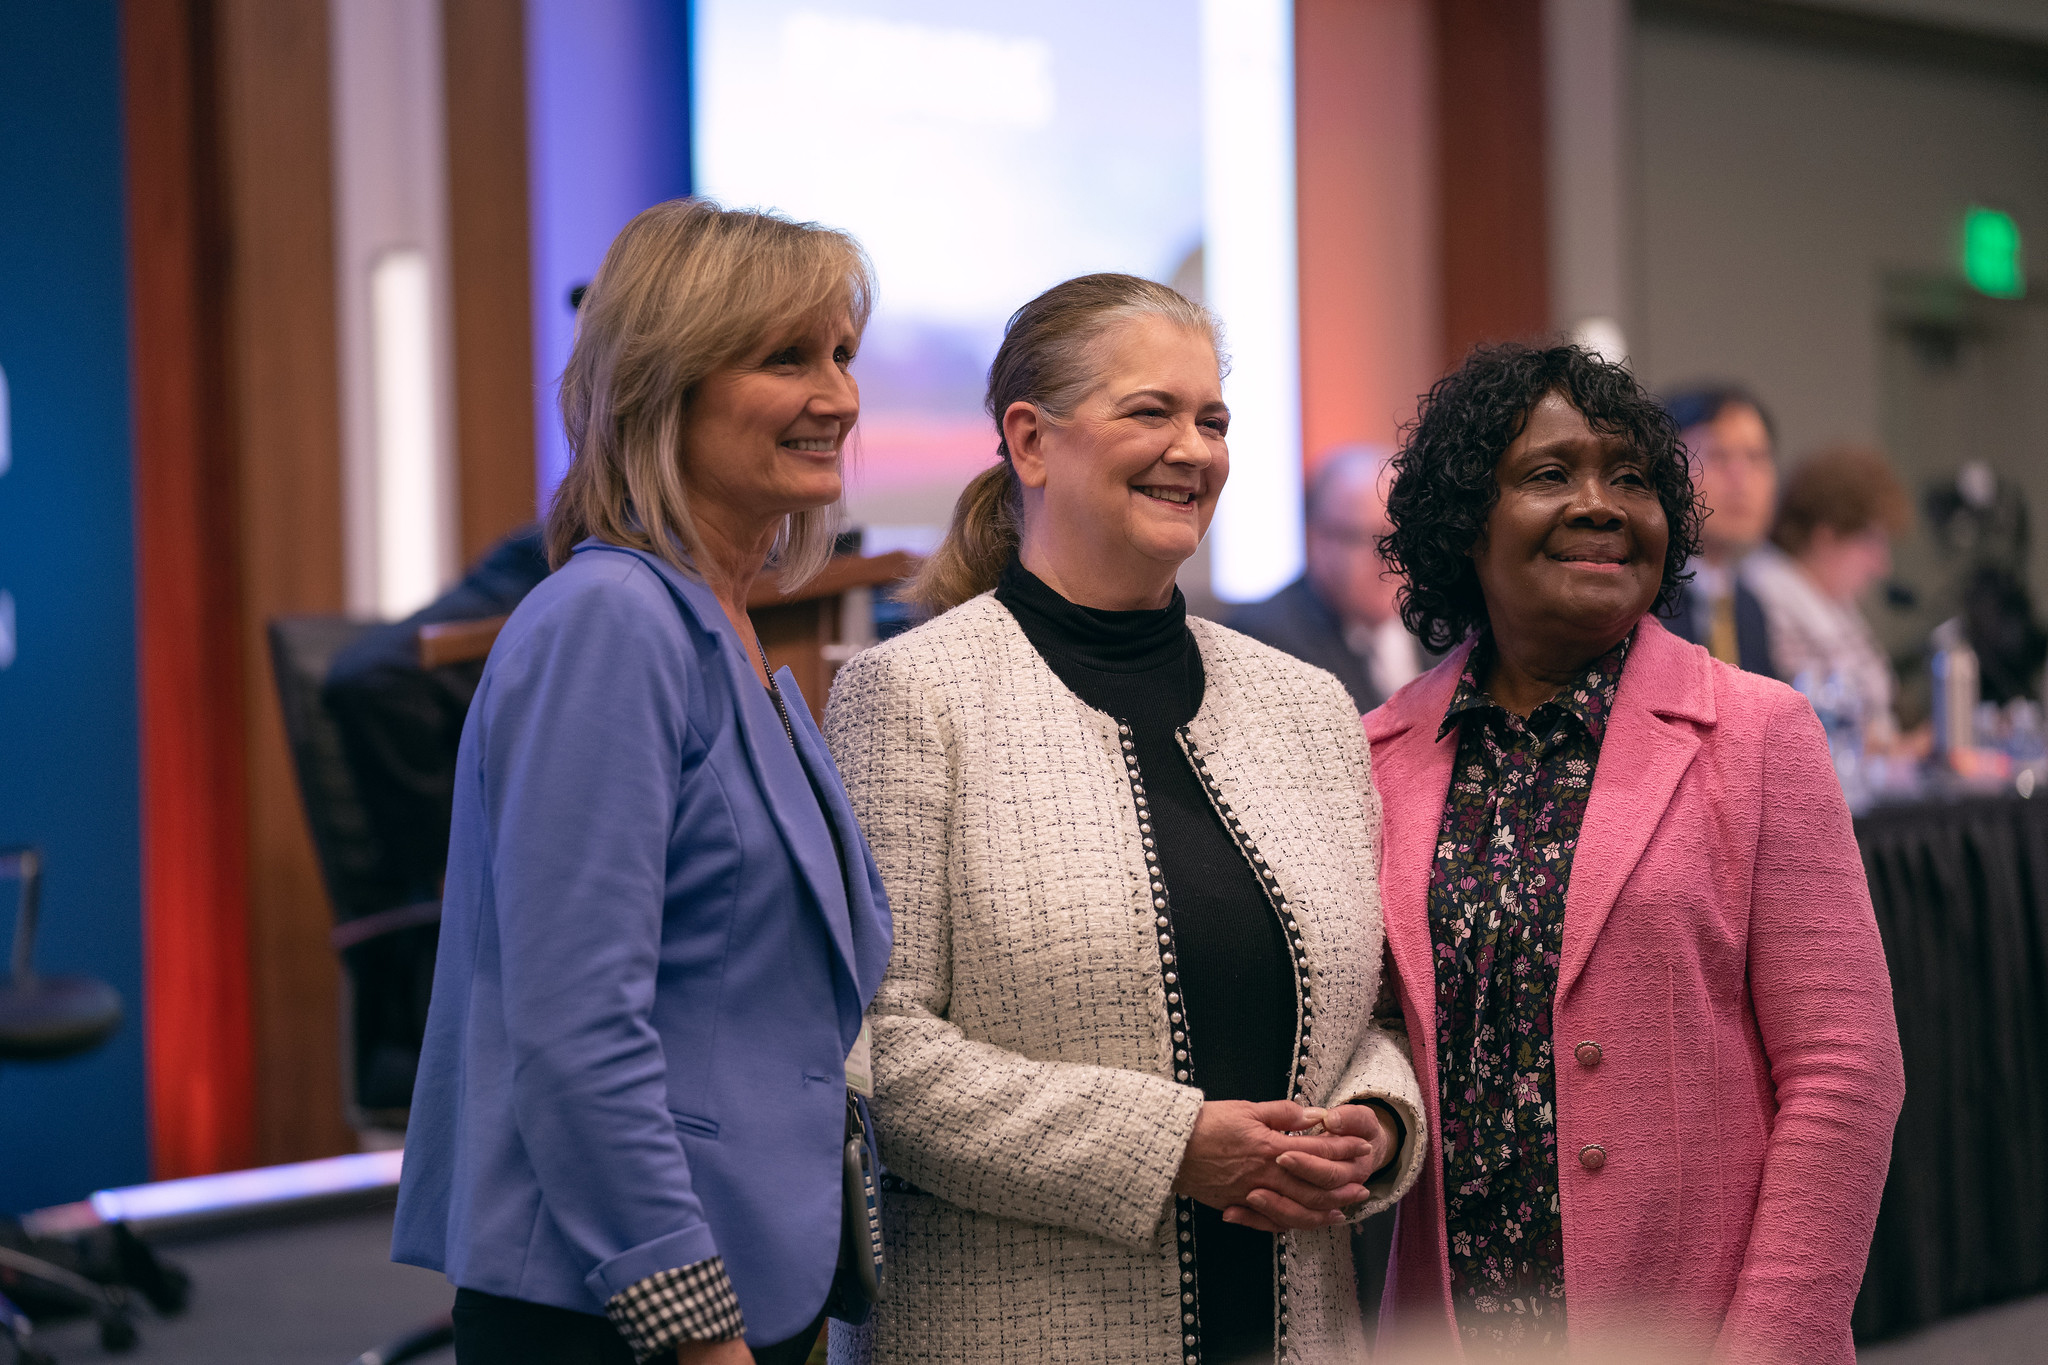 Bonita Shields, Debra Brill, and Ella Simmons pose for a photo together on Nov. 3, 2019, during the NAD Year-End Meeting morning program